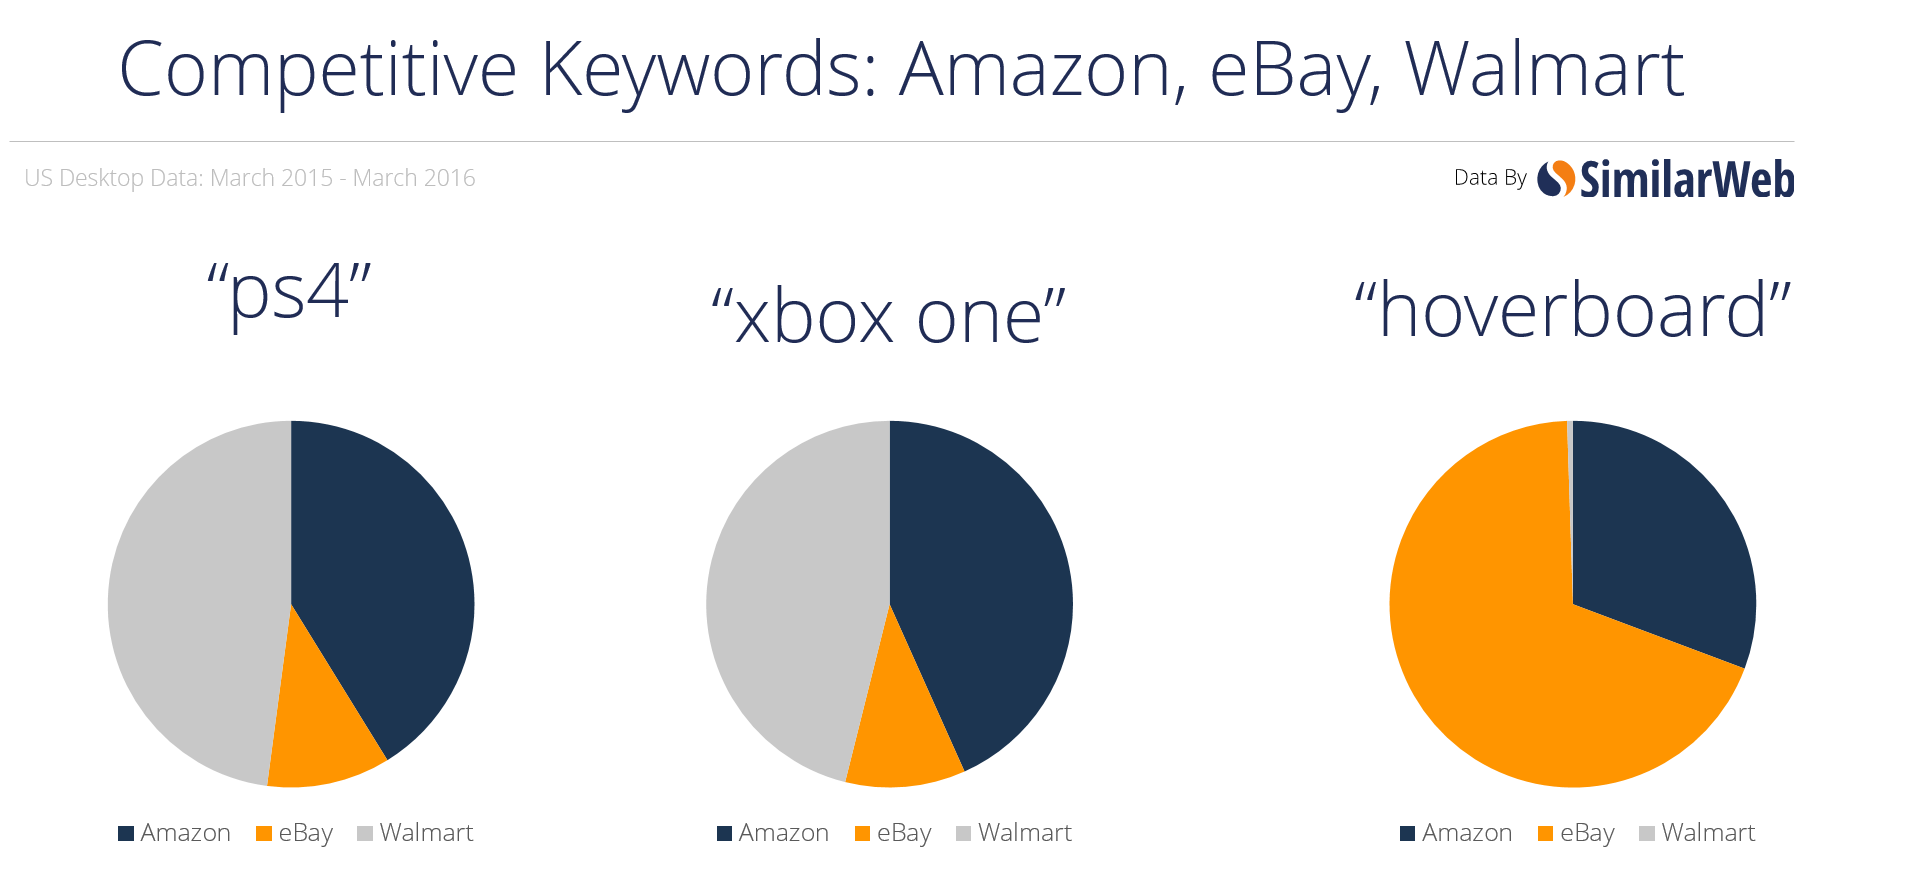 Amazon's SEO Strategy